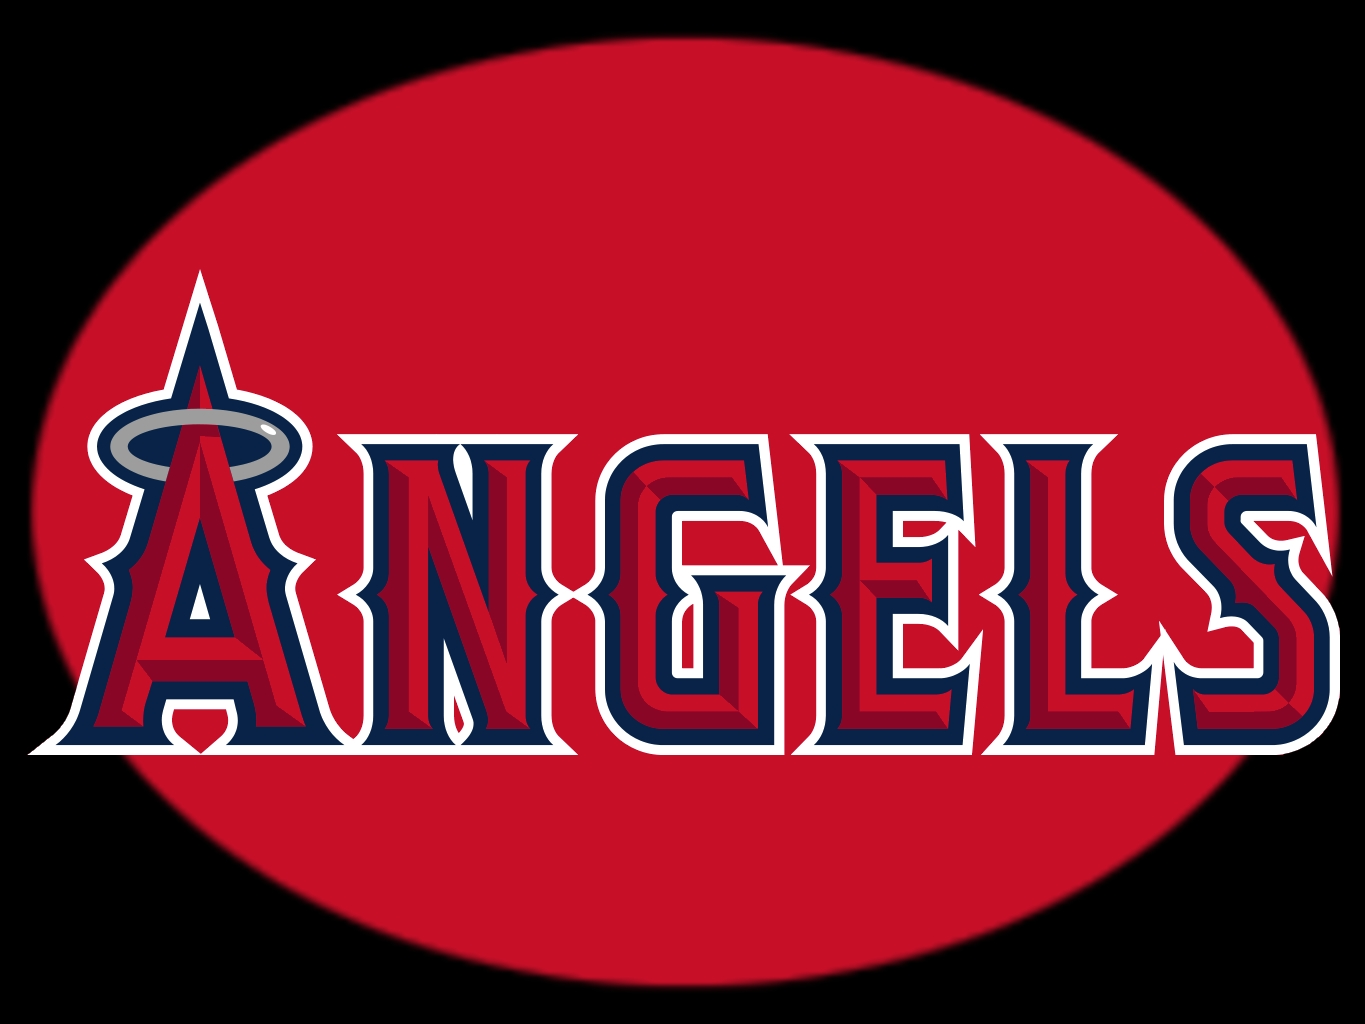 of Anaheim background Los Angeles Angels of Anaheim wallpapers 1365x1024